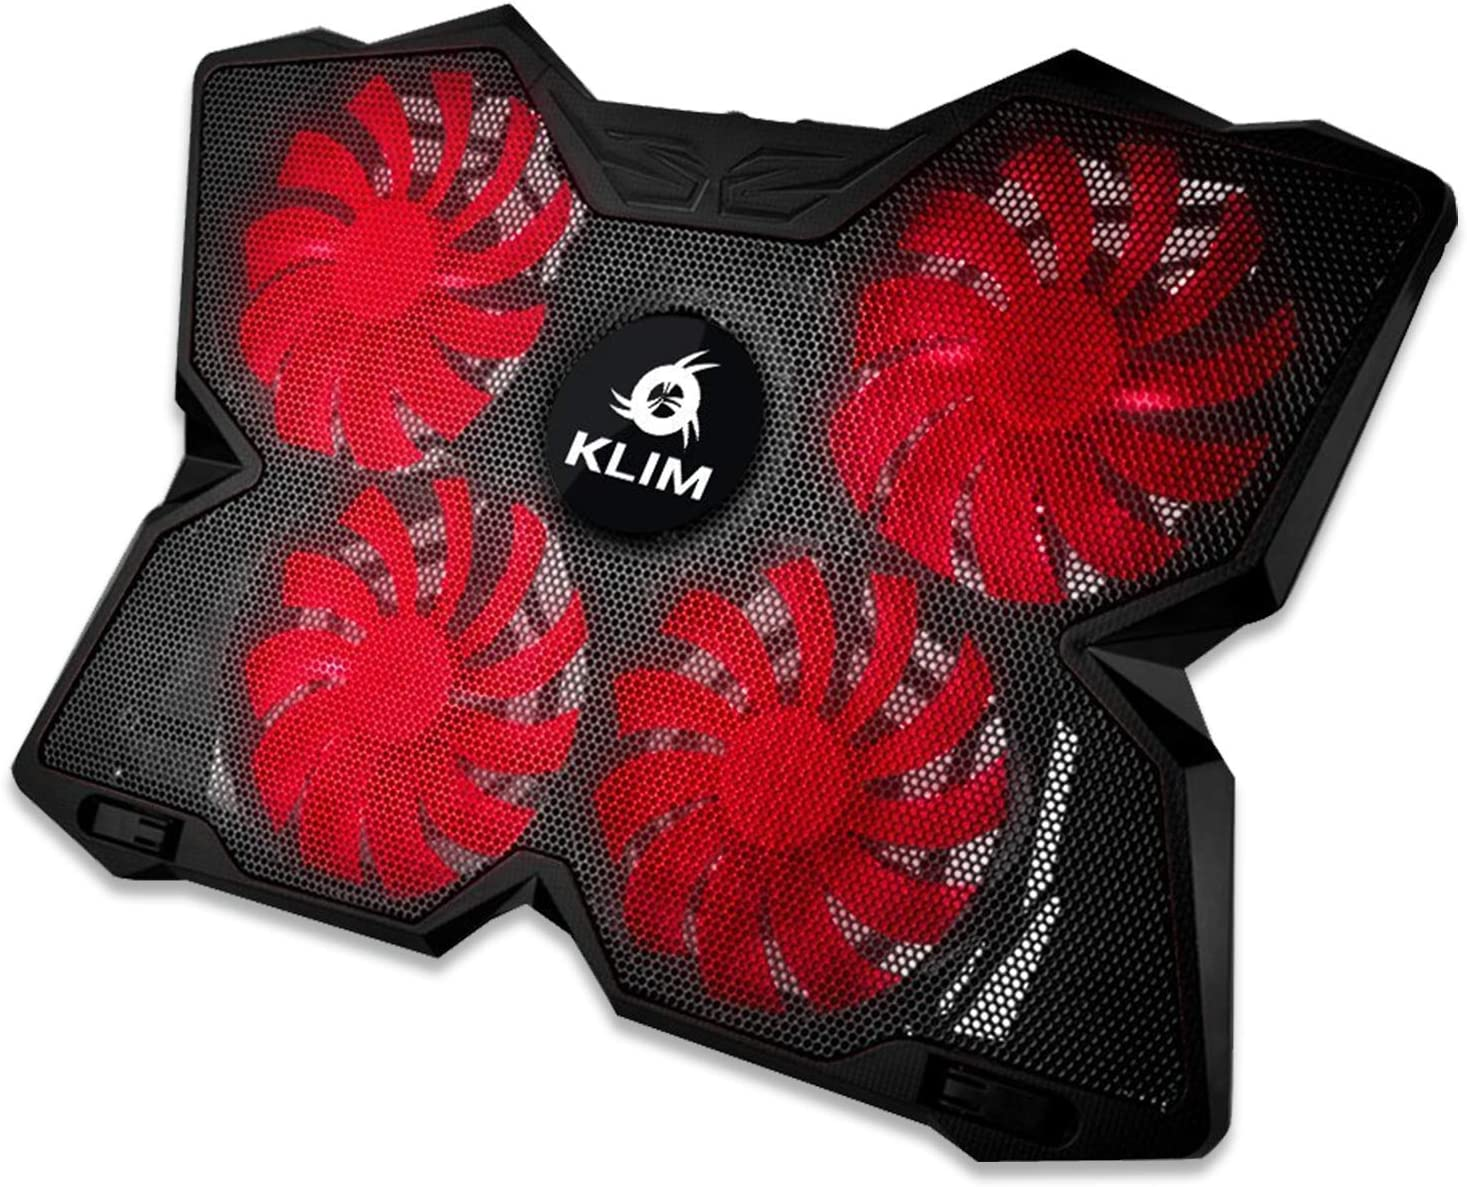 KLIM Wind Laptop Cooling Pad - Support 11 to 19 Inches Laptops, PS4 - [ 4 Fans ] - Light, Quiet Rapid Cooling Action - Ergonomic Ventilated Support - Gamer USB Slim Portable Gaming Stand - Black